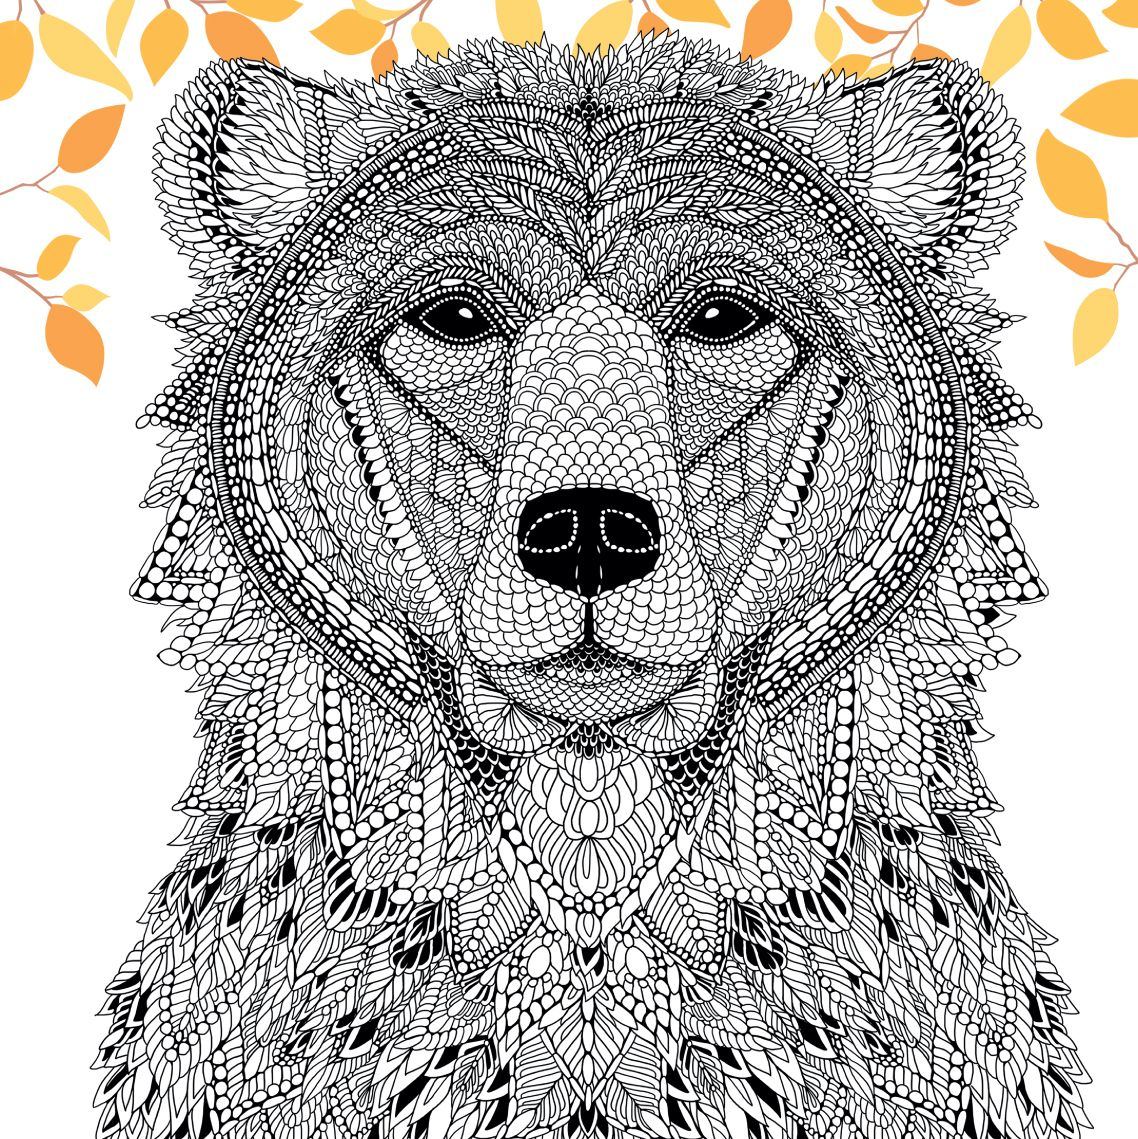 Zen colouring book animals - Each Wonderfully Detailed Piece In The Colouring Book The Menagerie Is A Work Of Art To